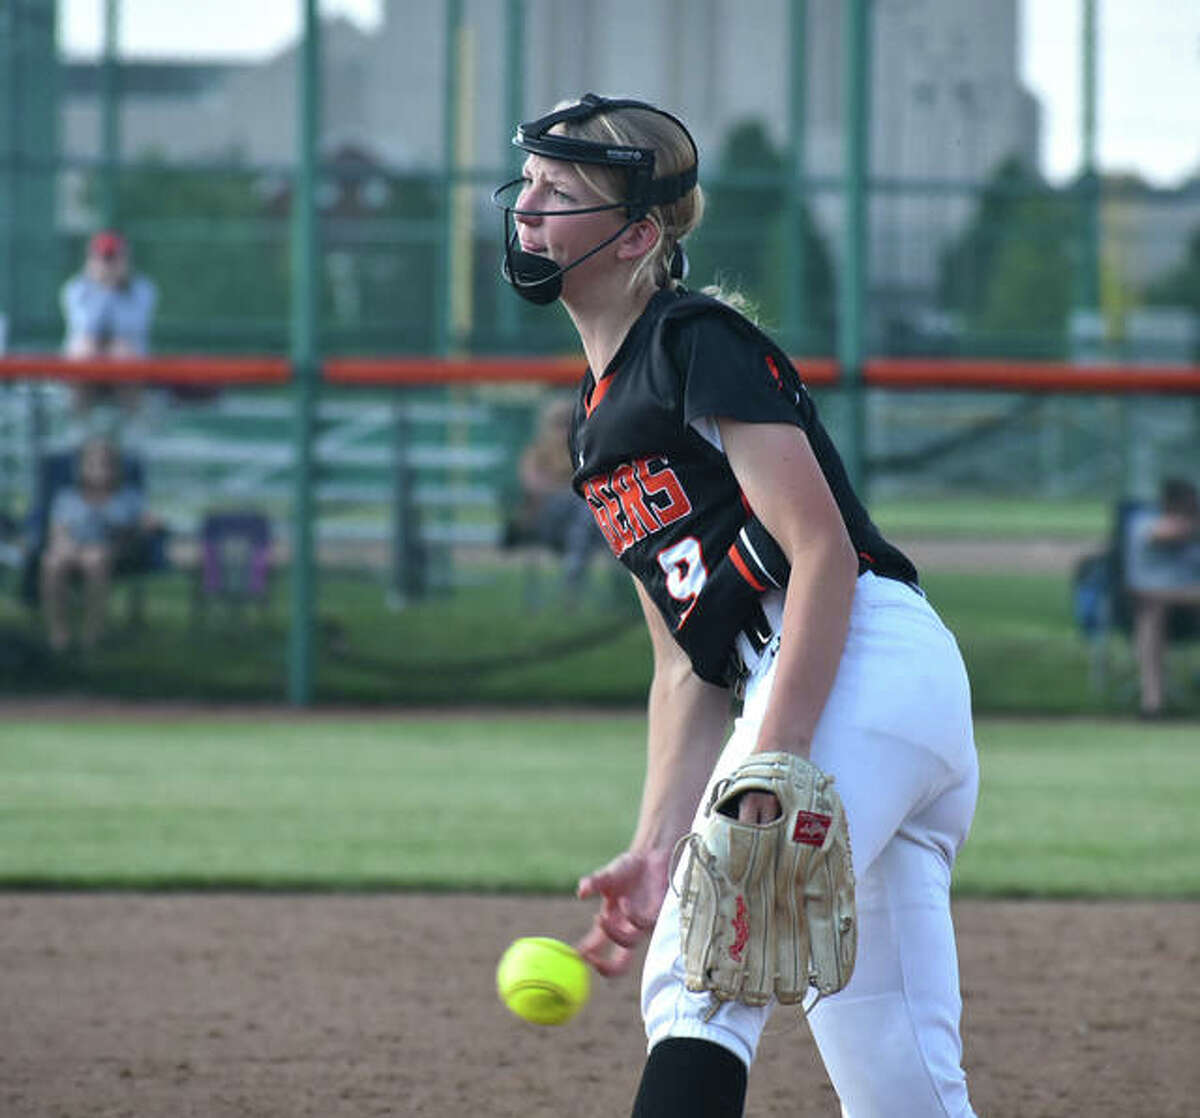 Edwardsville's Avery Hamilton delivers a pitch against O'Fallon in the sixth inning of a Class 4A regional championship game inside the District 7 Sports Complex.